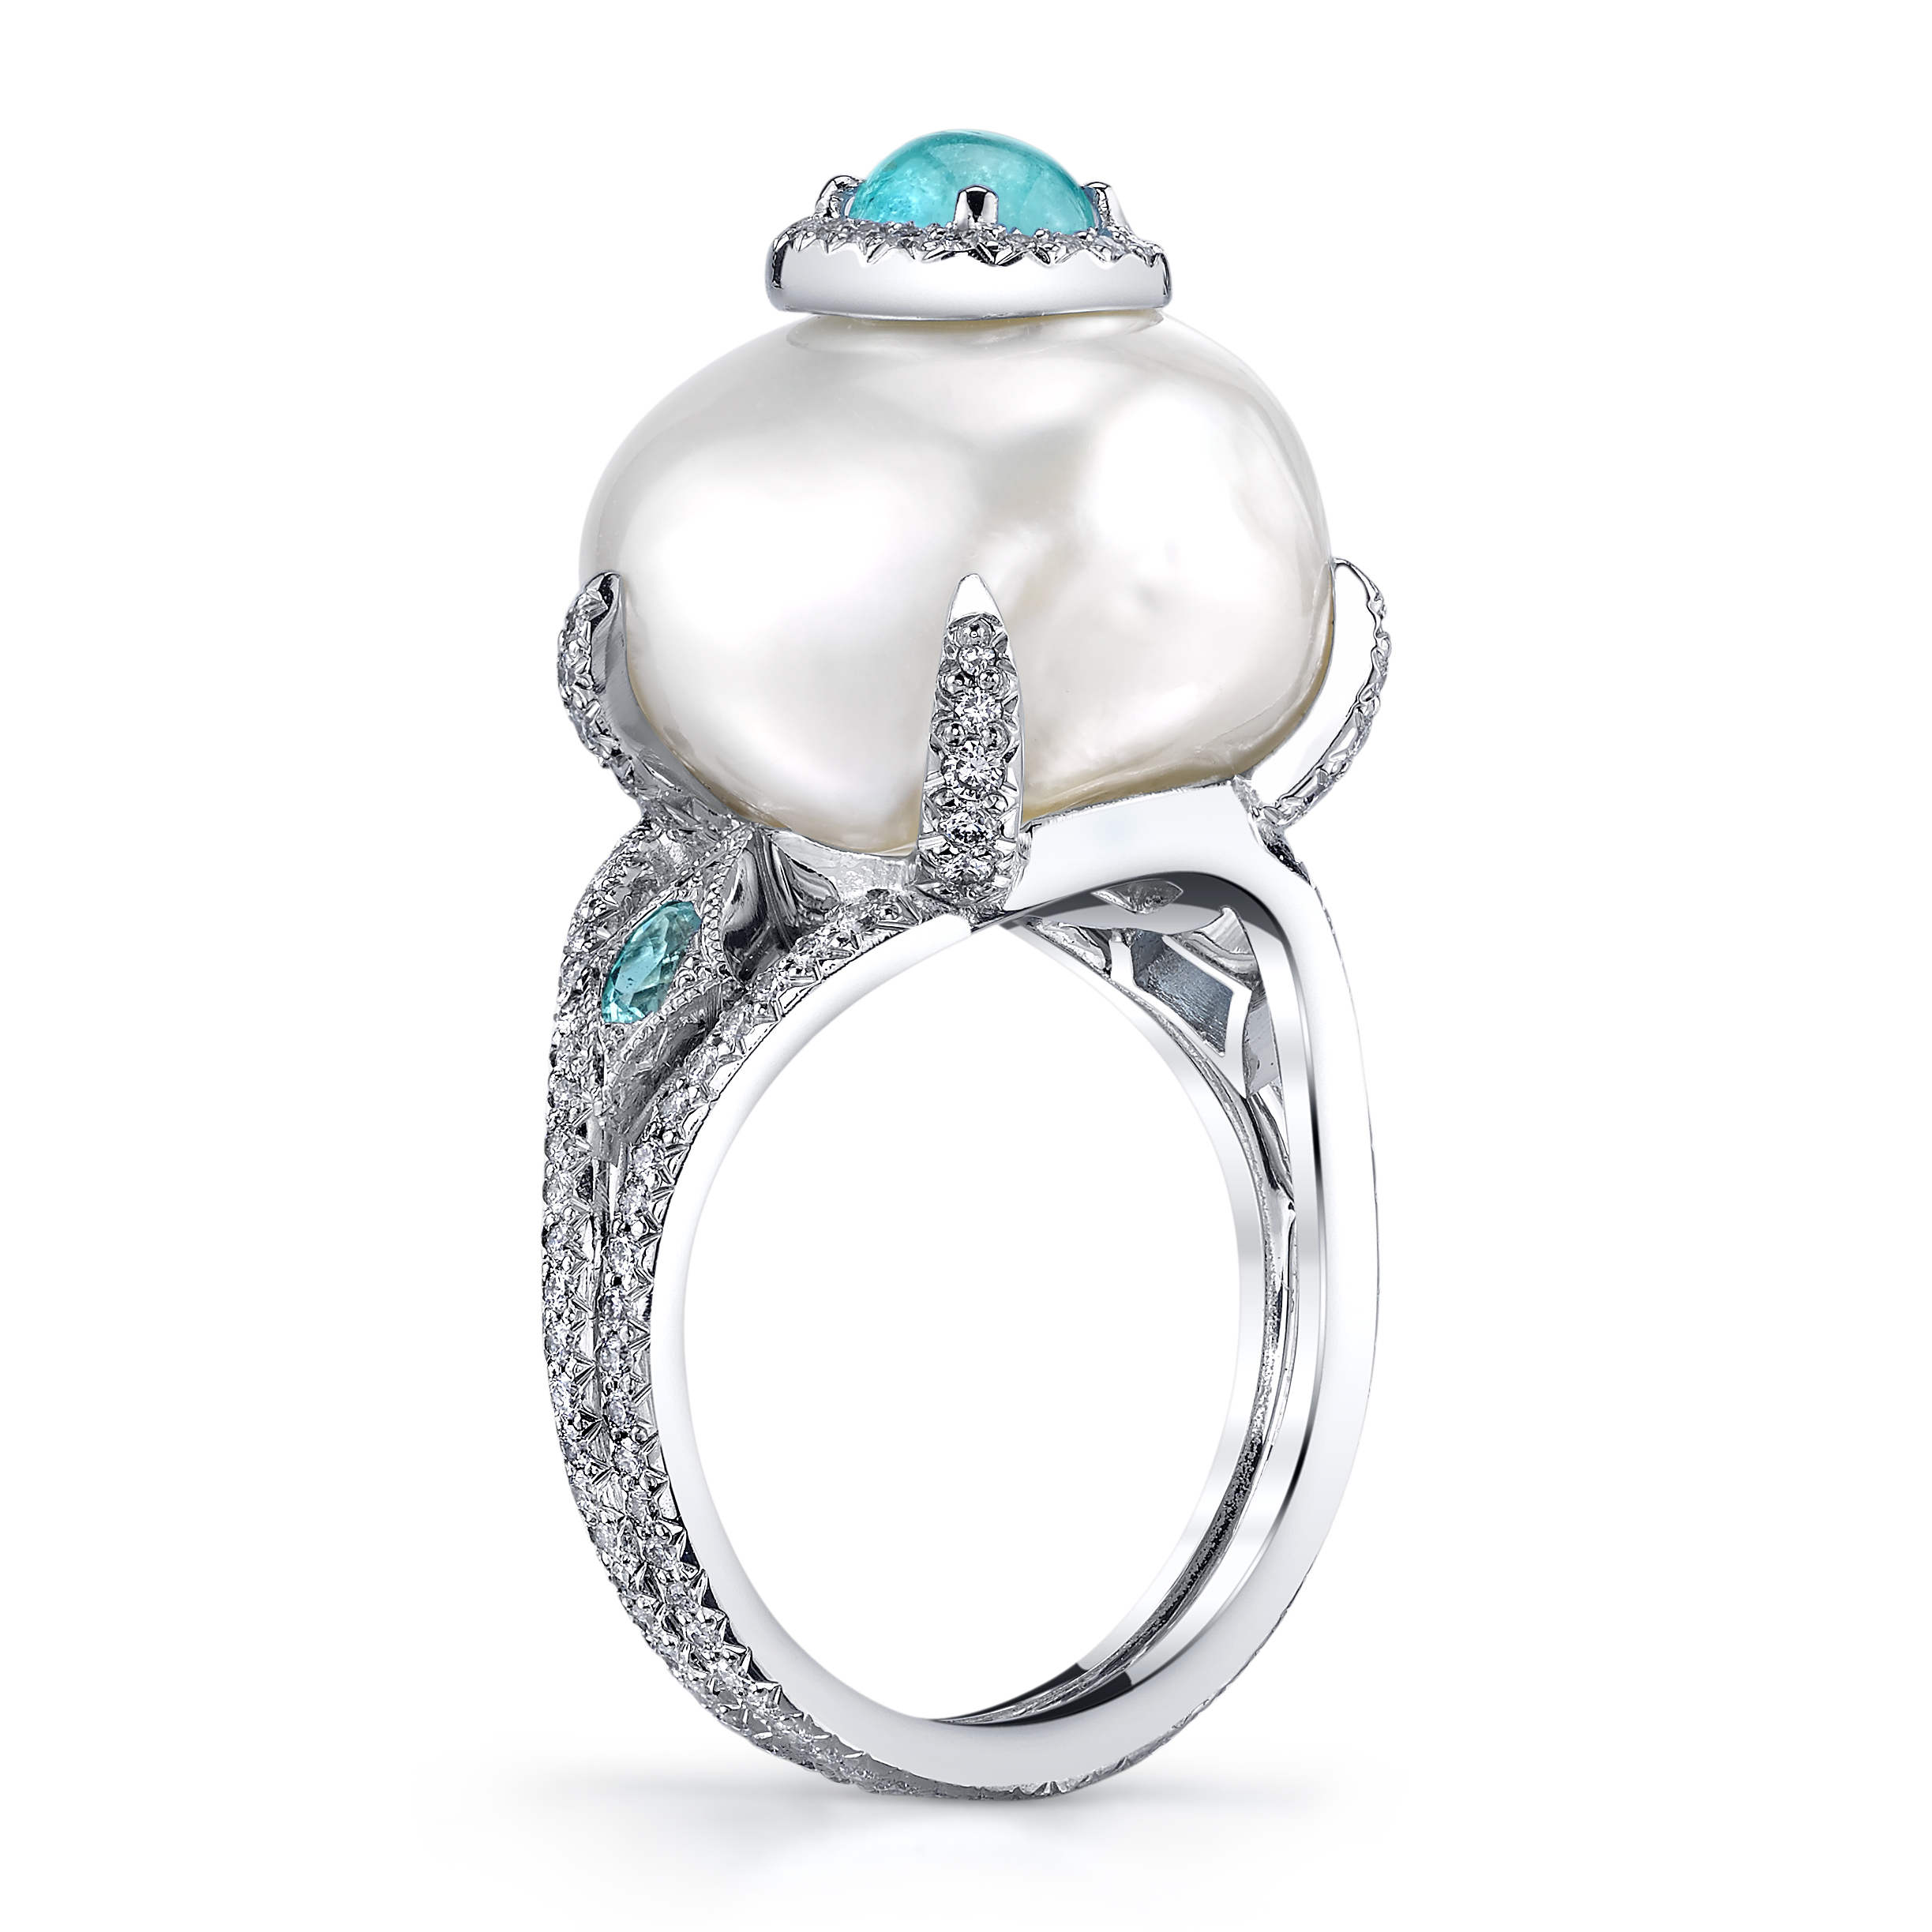 Erica Courtney Perola ring | JCK On Your Market